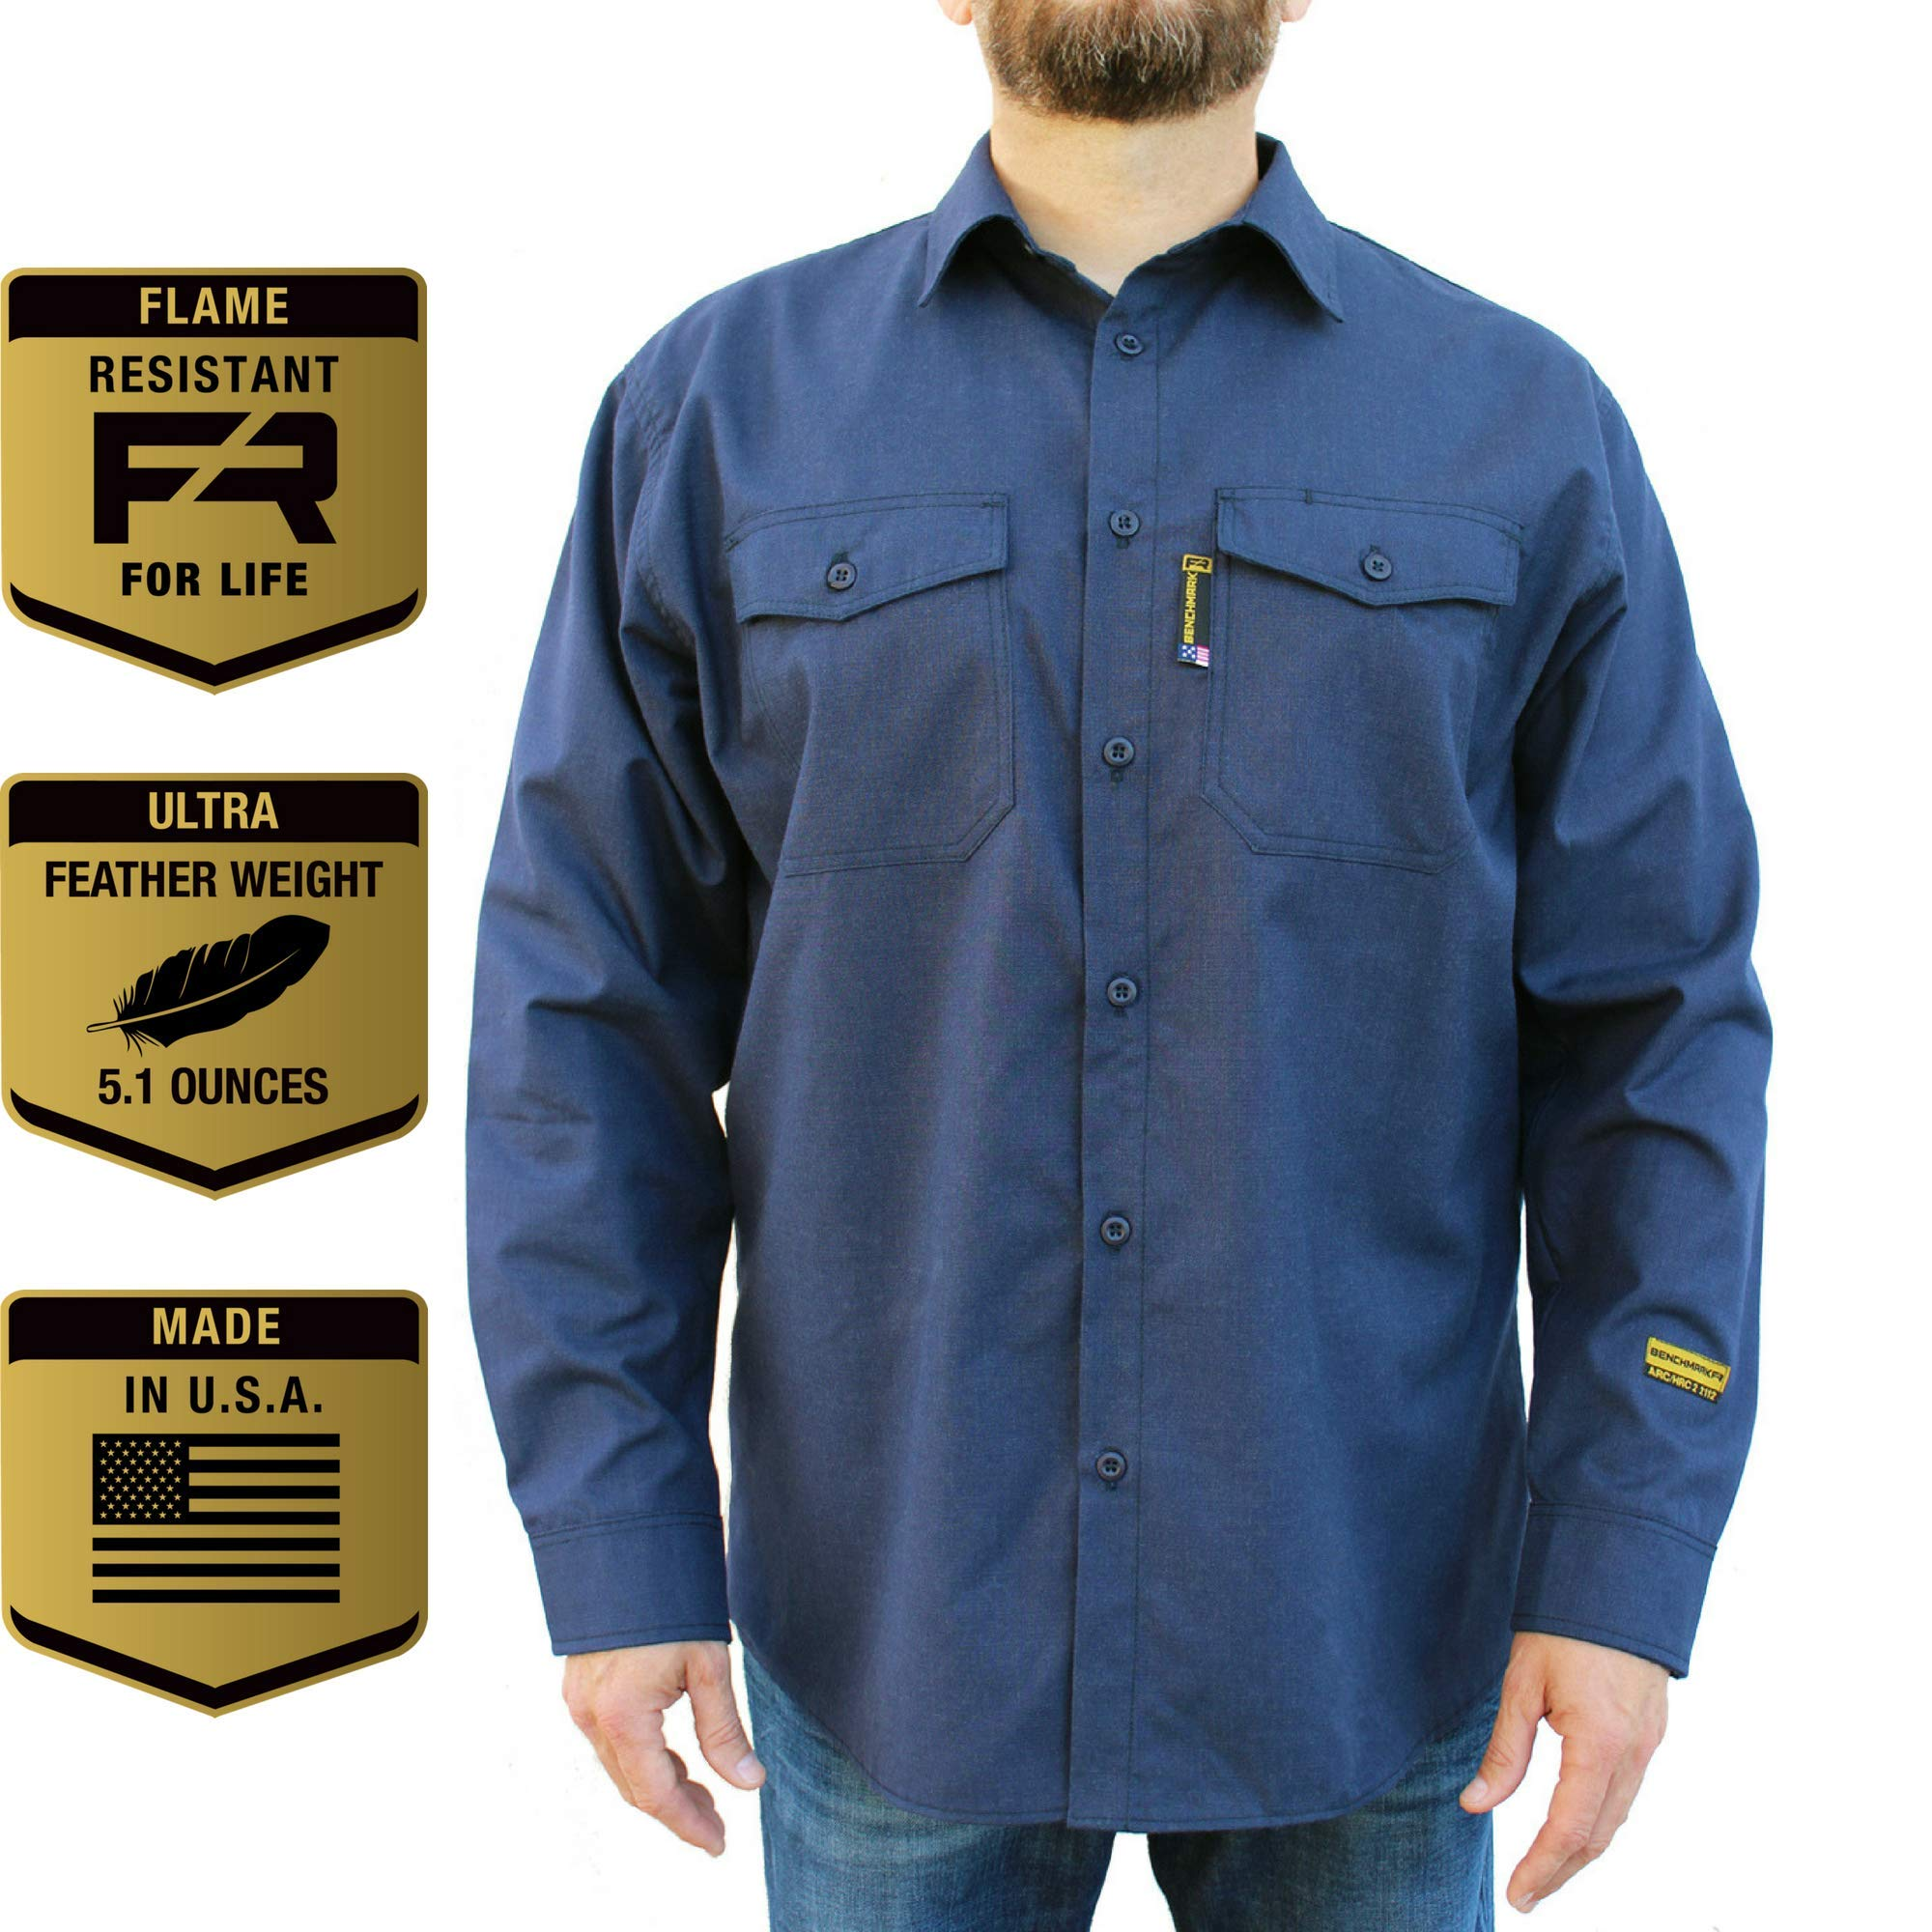 Benchmark FR Silver Bullet, 5.1 oz Ultra Lightweight FR Shirt, NPFA 2112 & CAT 2, Moisture Wicking, Men's FRC with 9 Cal rating, Made in USA, Advanced FR Materials, Navy, XL